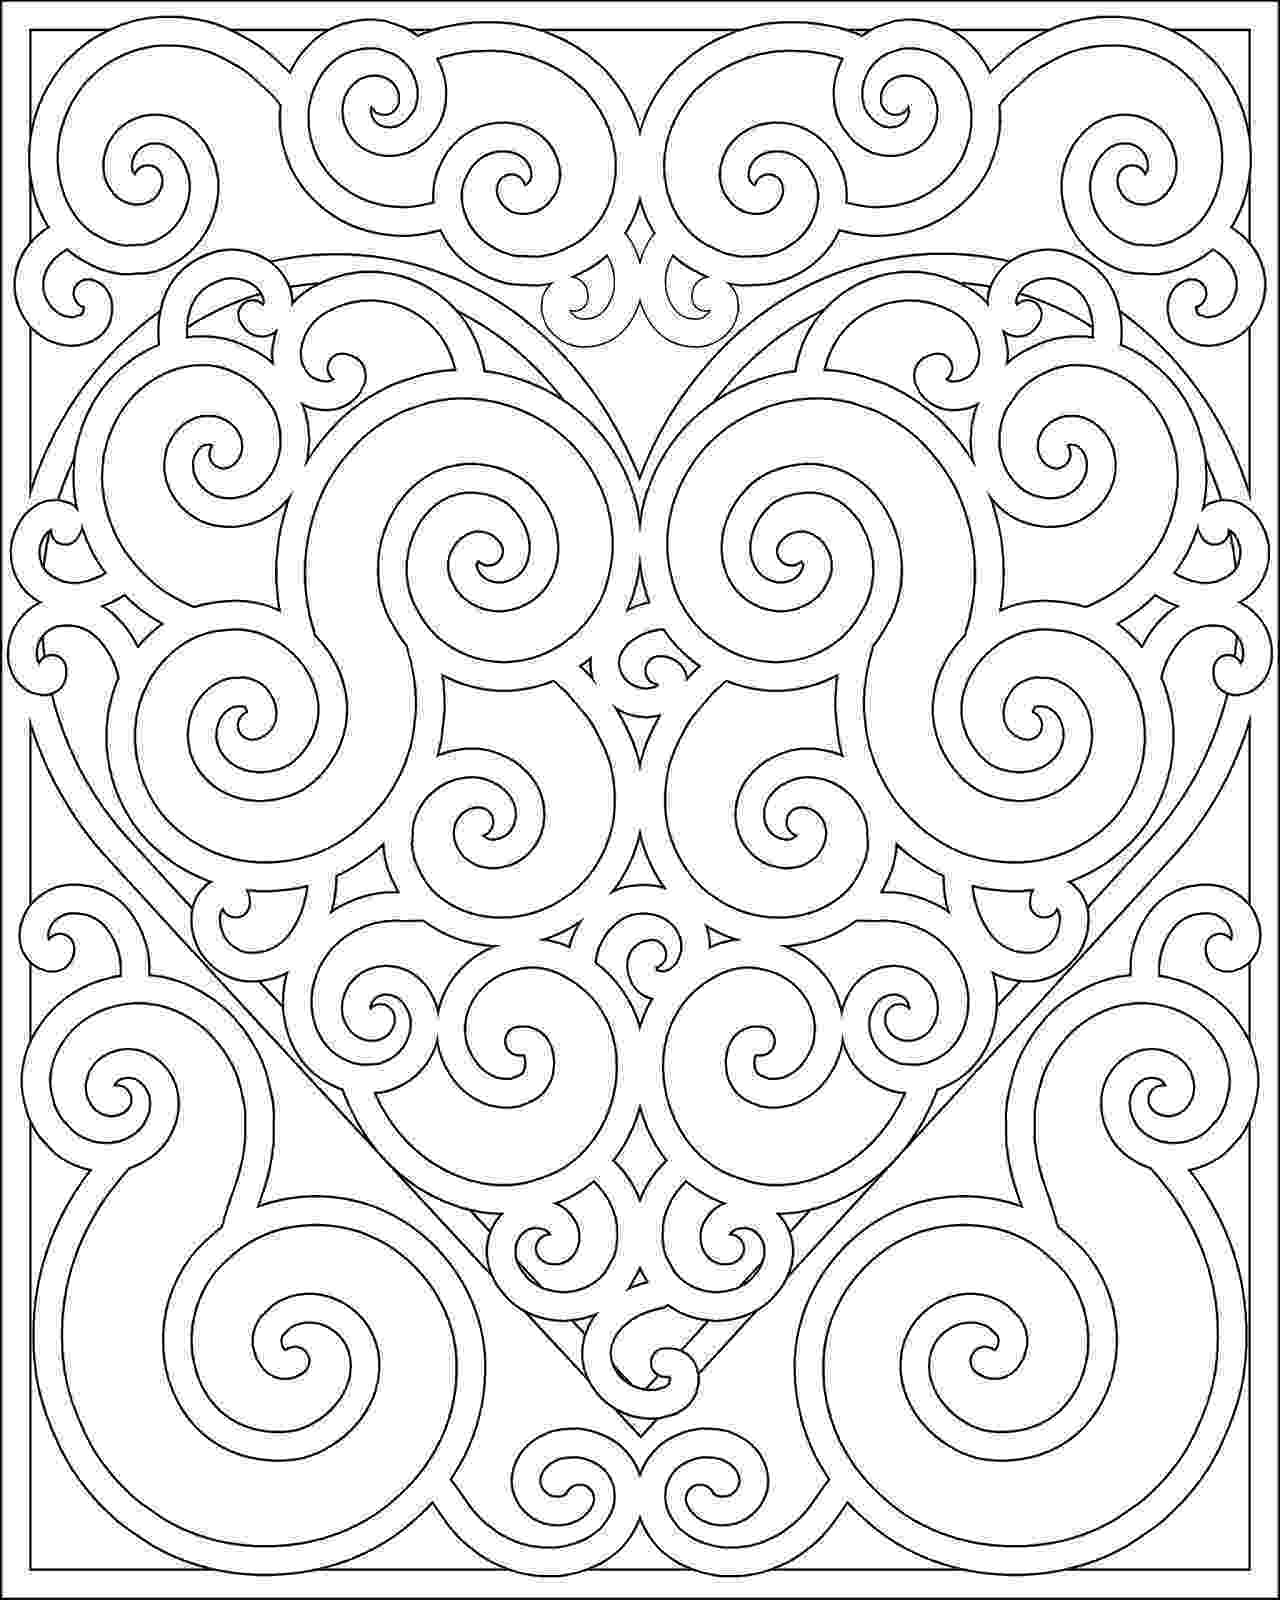 free pattern coloring pages quilt coloring pages to download and print for free pattern pages free coloring